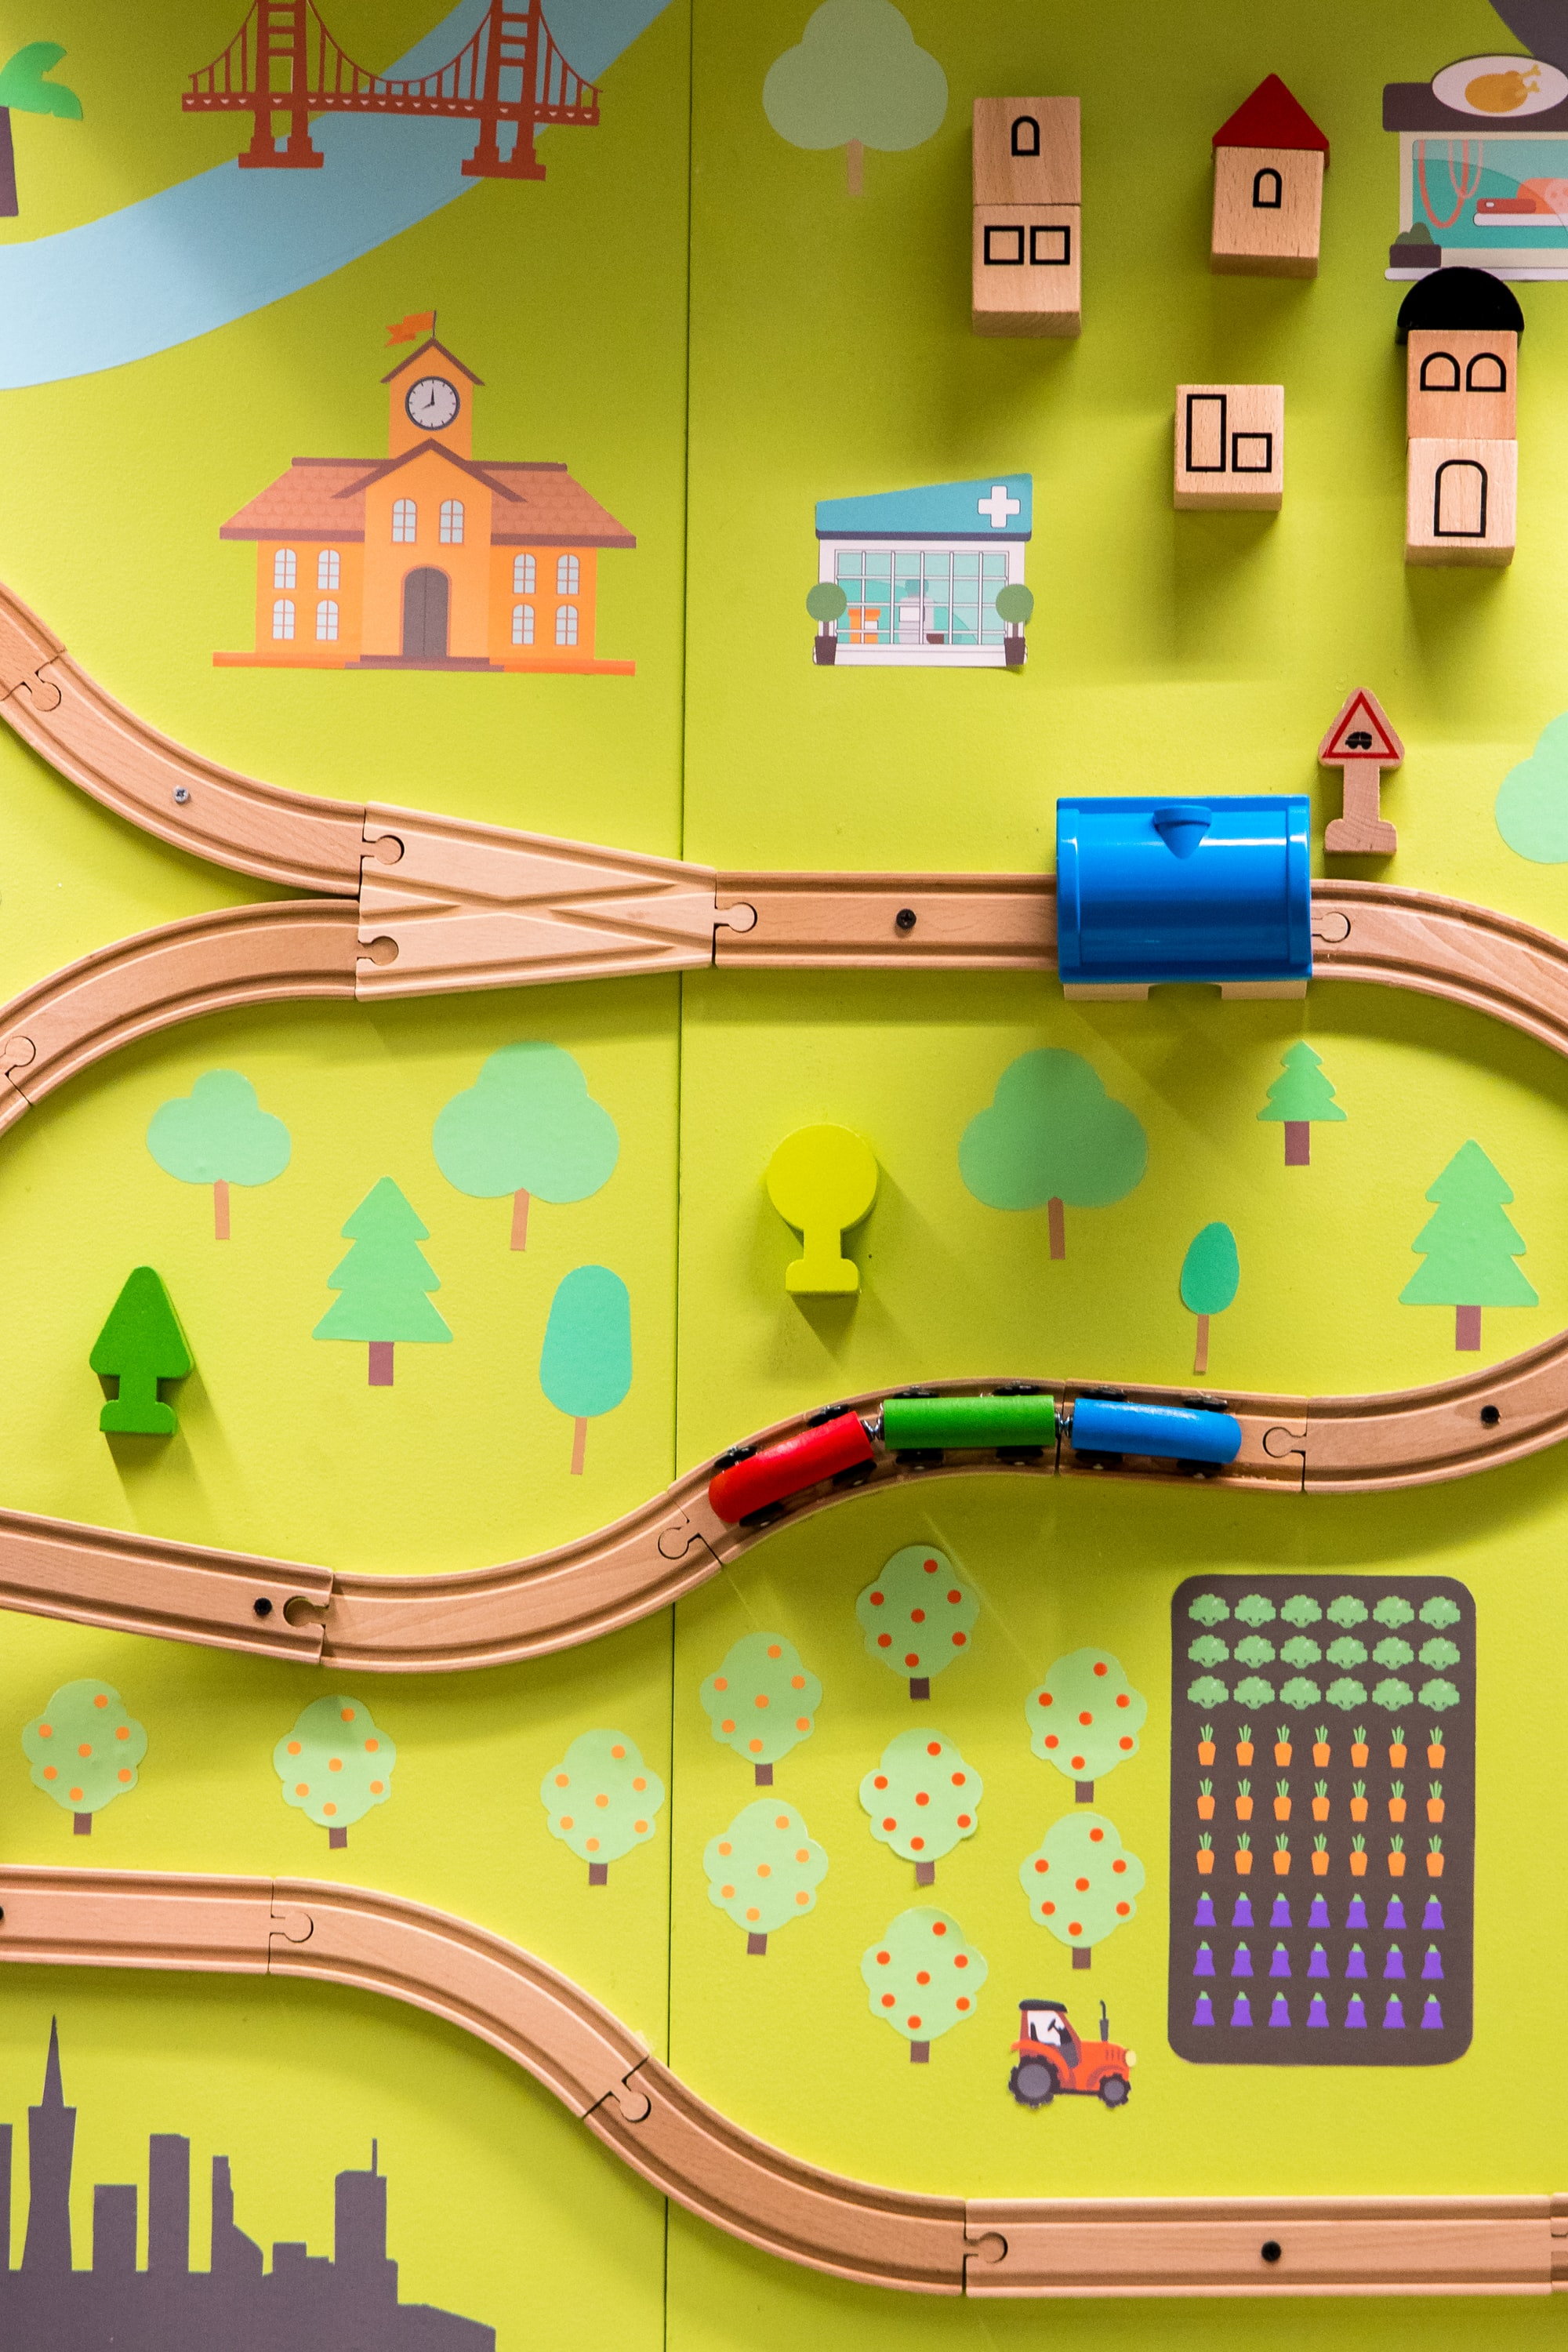 Image of a child's wooden train set.